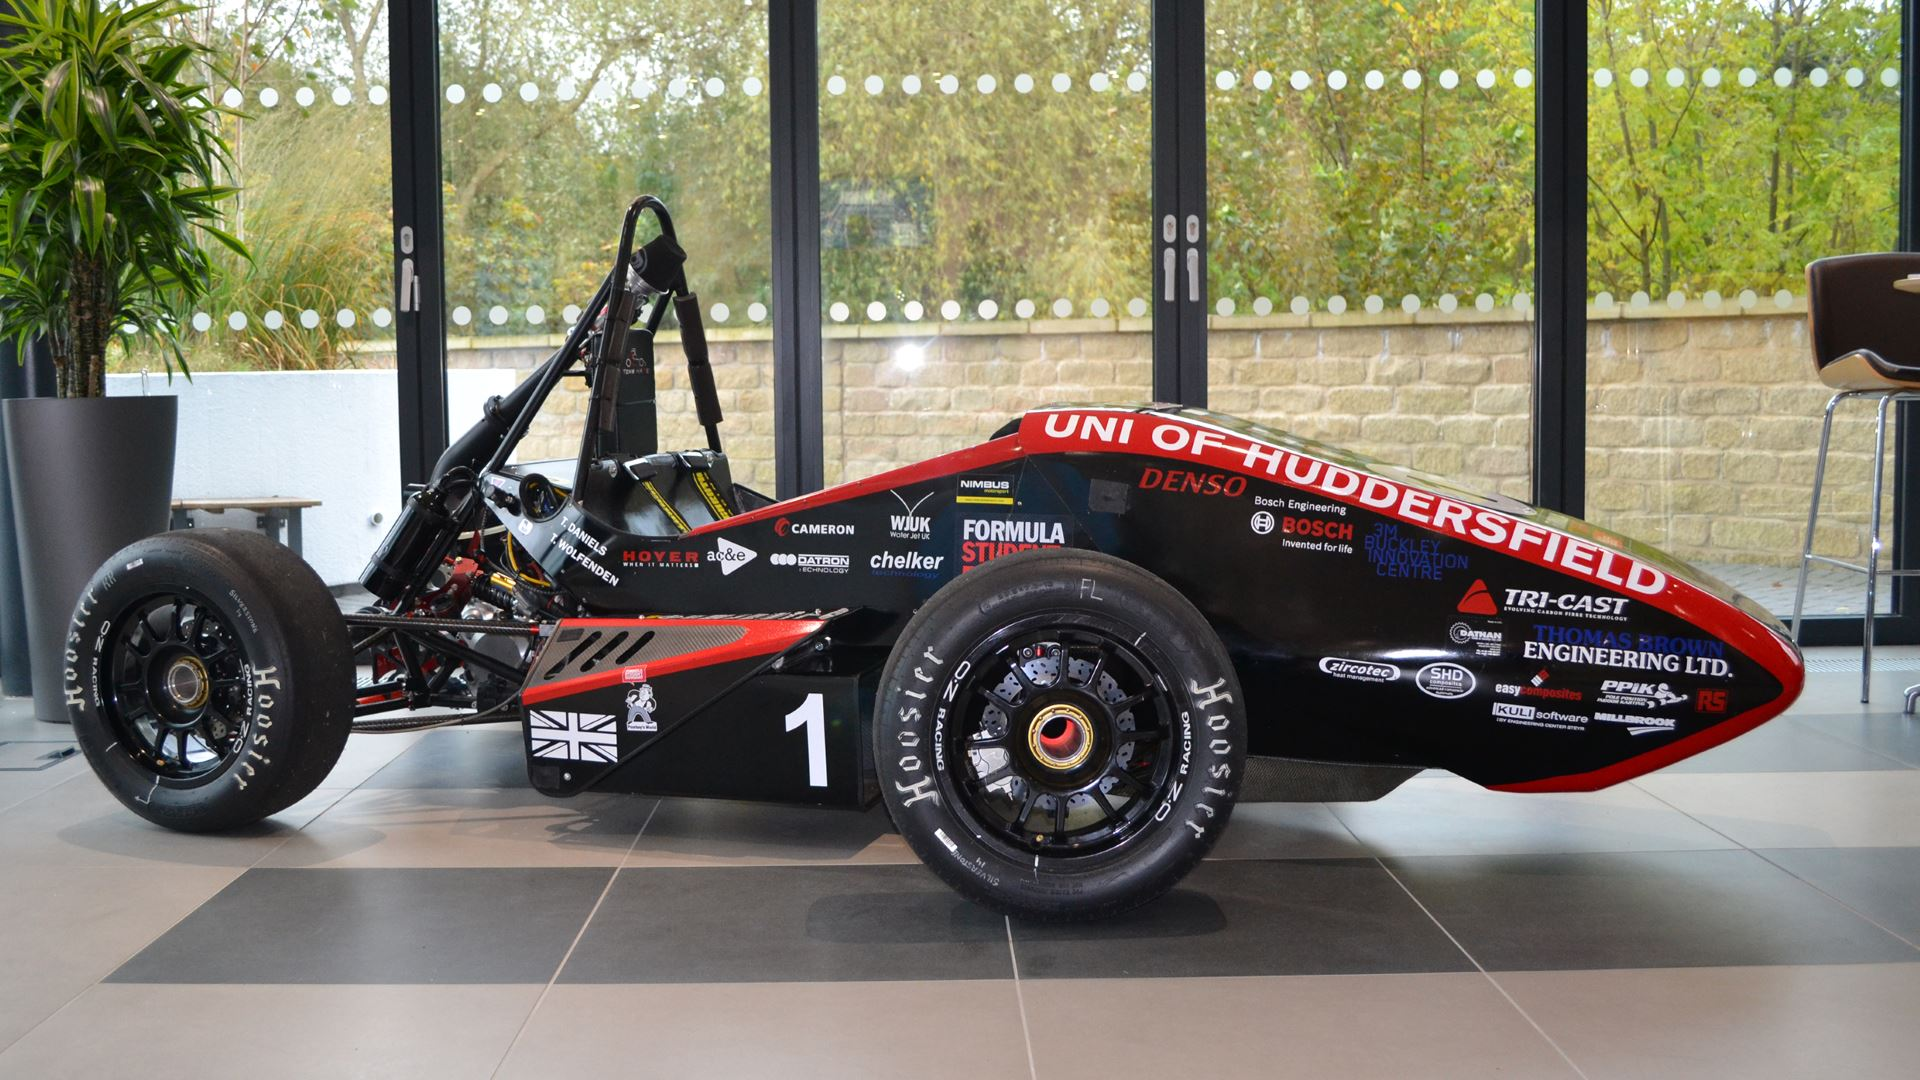 University of Huddersfield's Team Hare Formula Student Racing Team vehicle